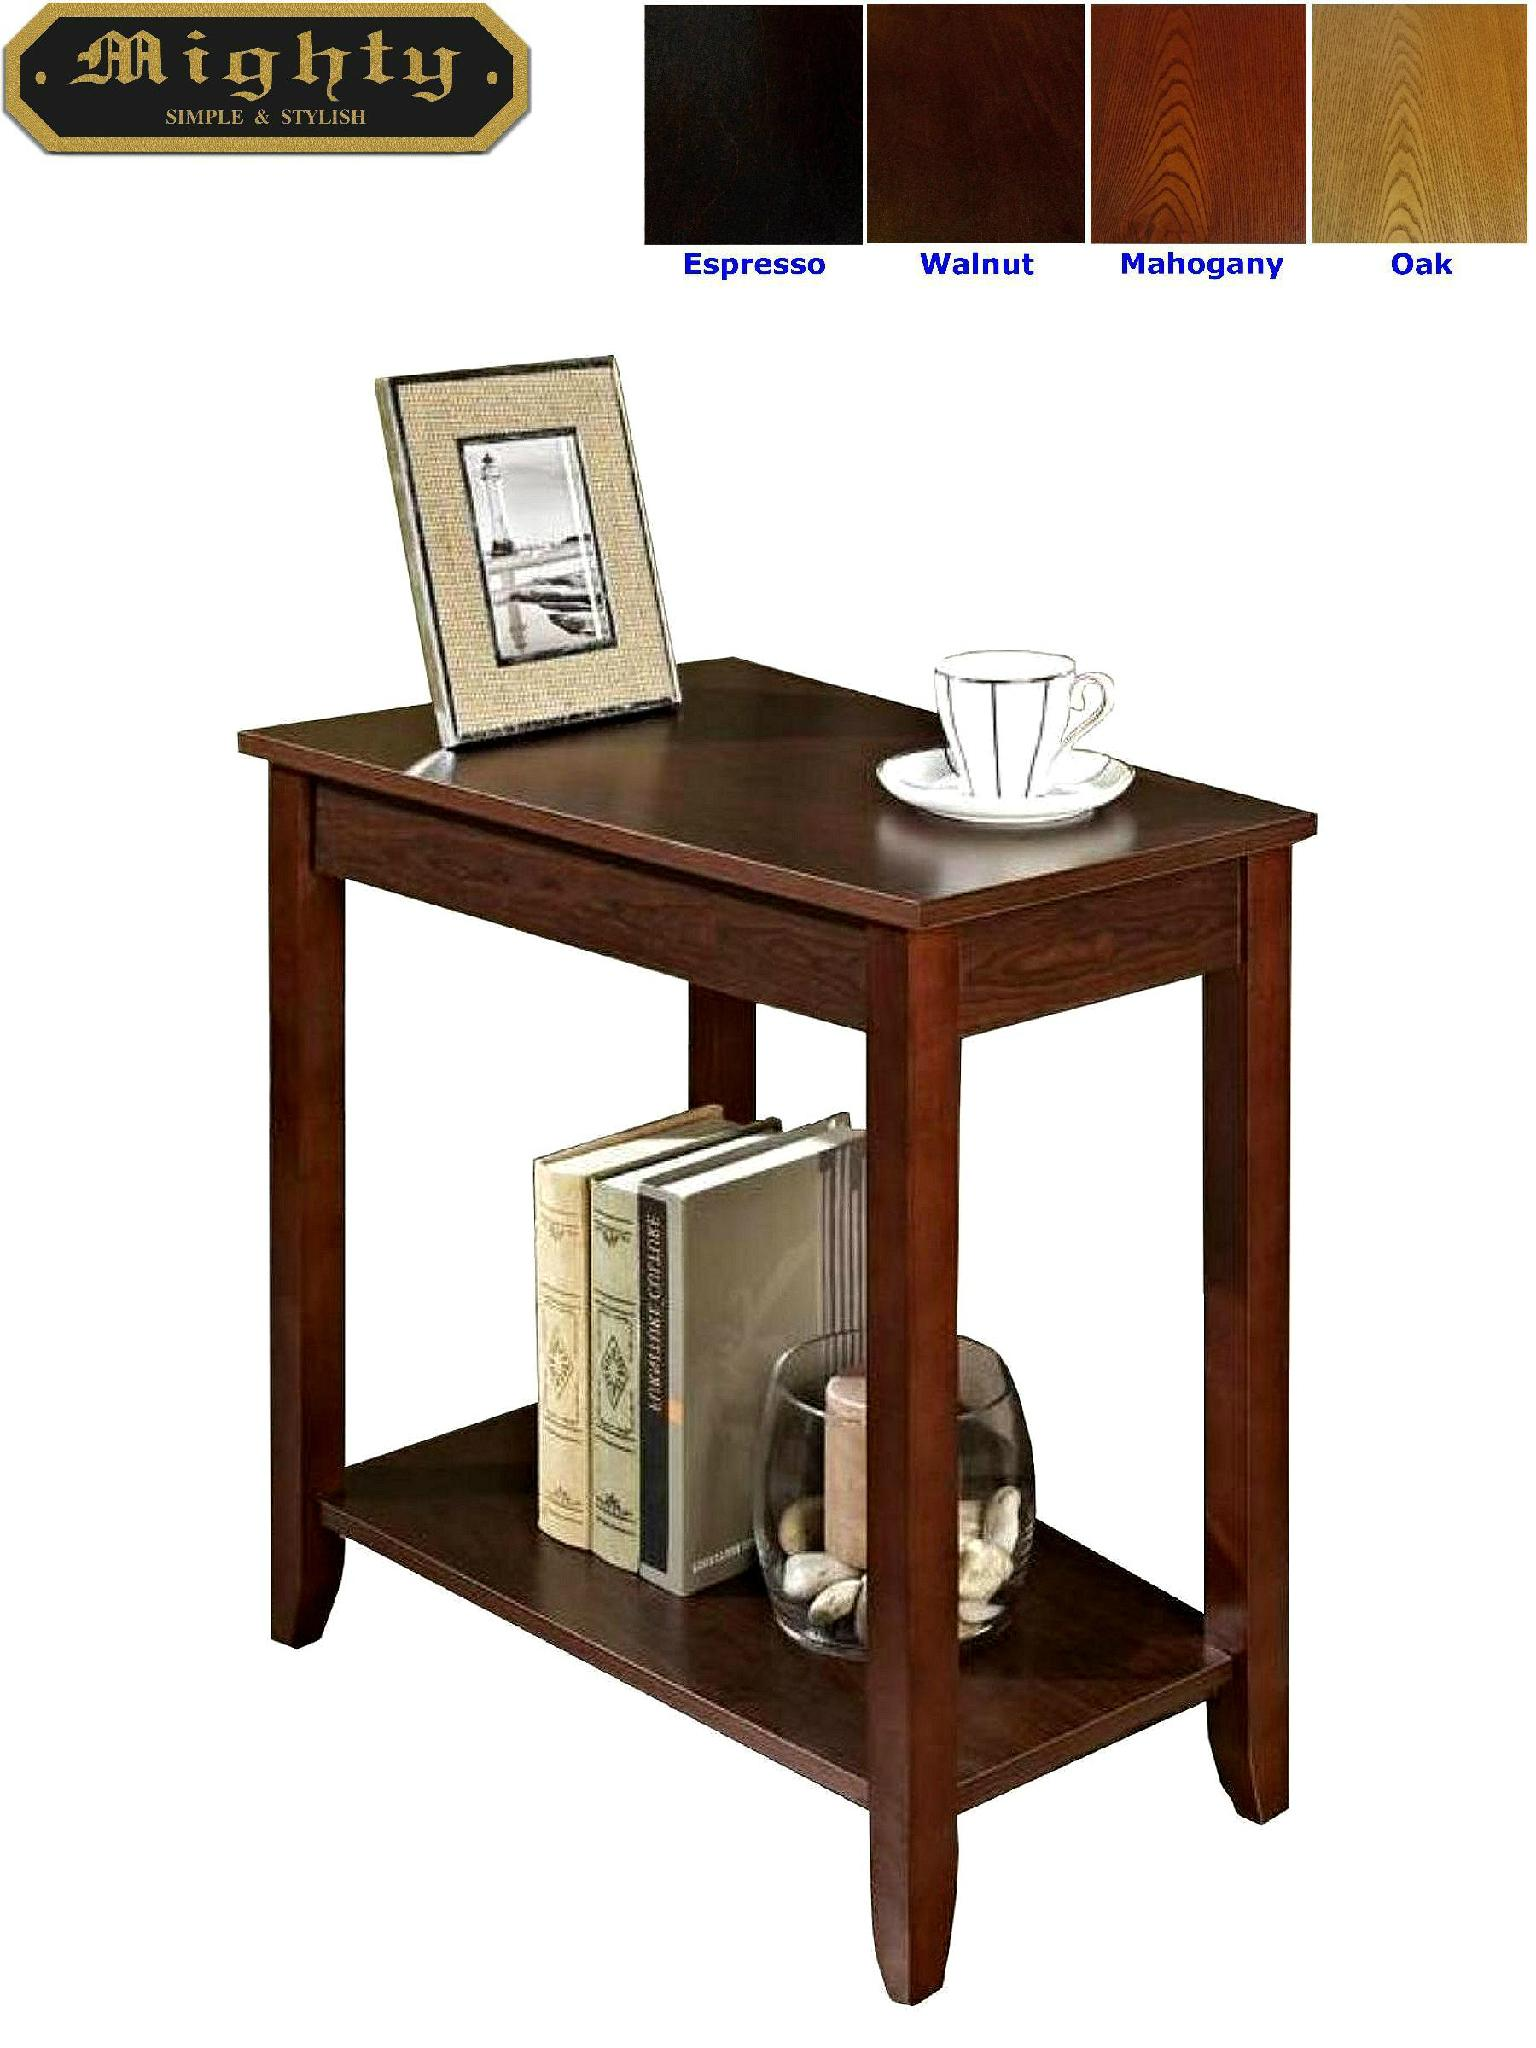 Wooden espresso wedge modern narrow side table taiwan - Narrow side tables for living room ...